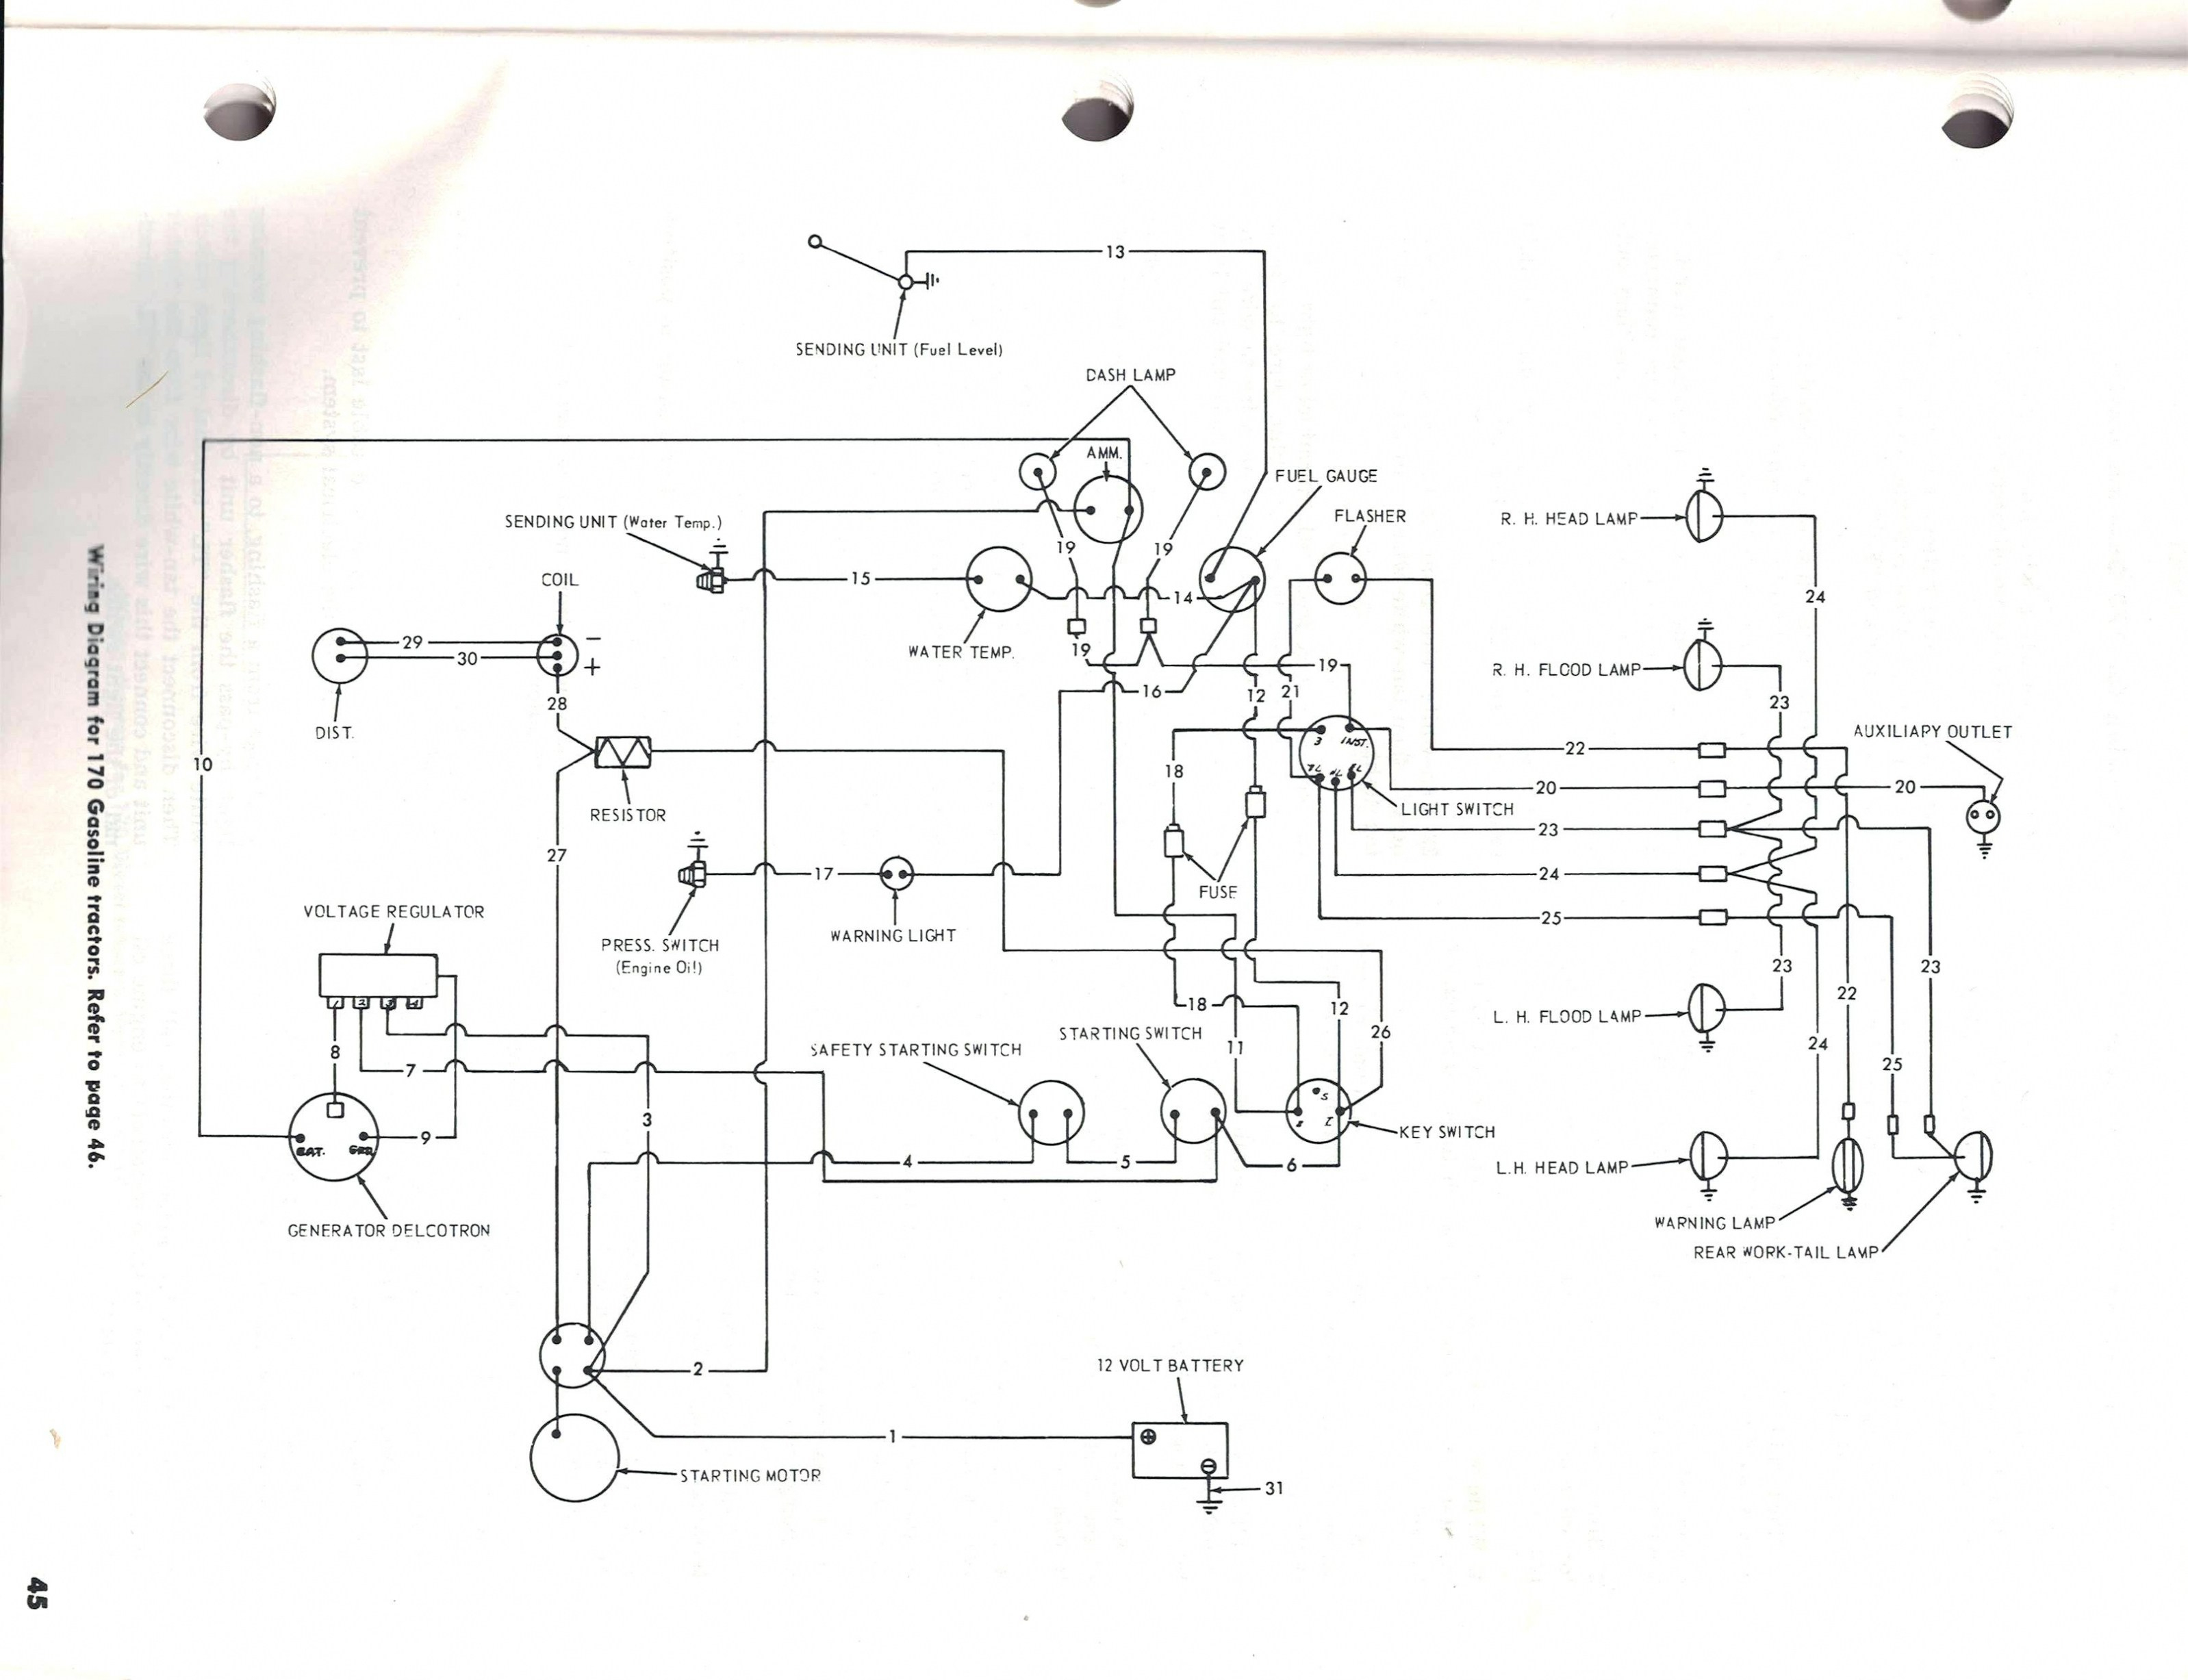 [DIAGRAM] Ford 8n Wiring Harness Diagram FULL Version HD